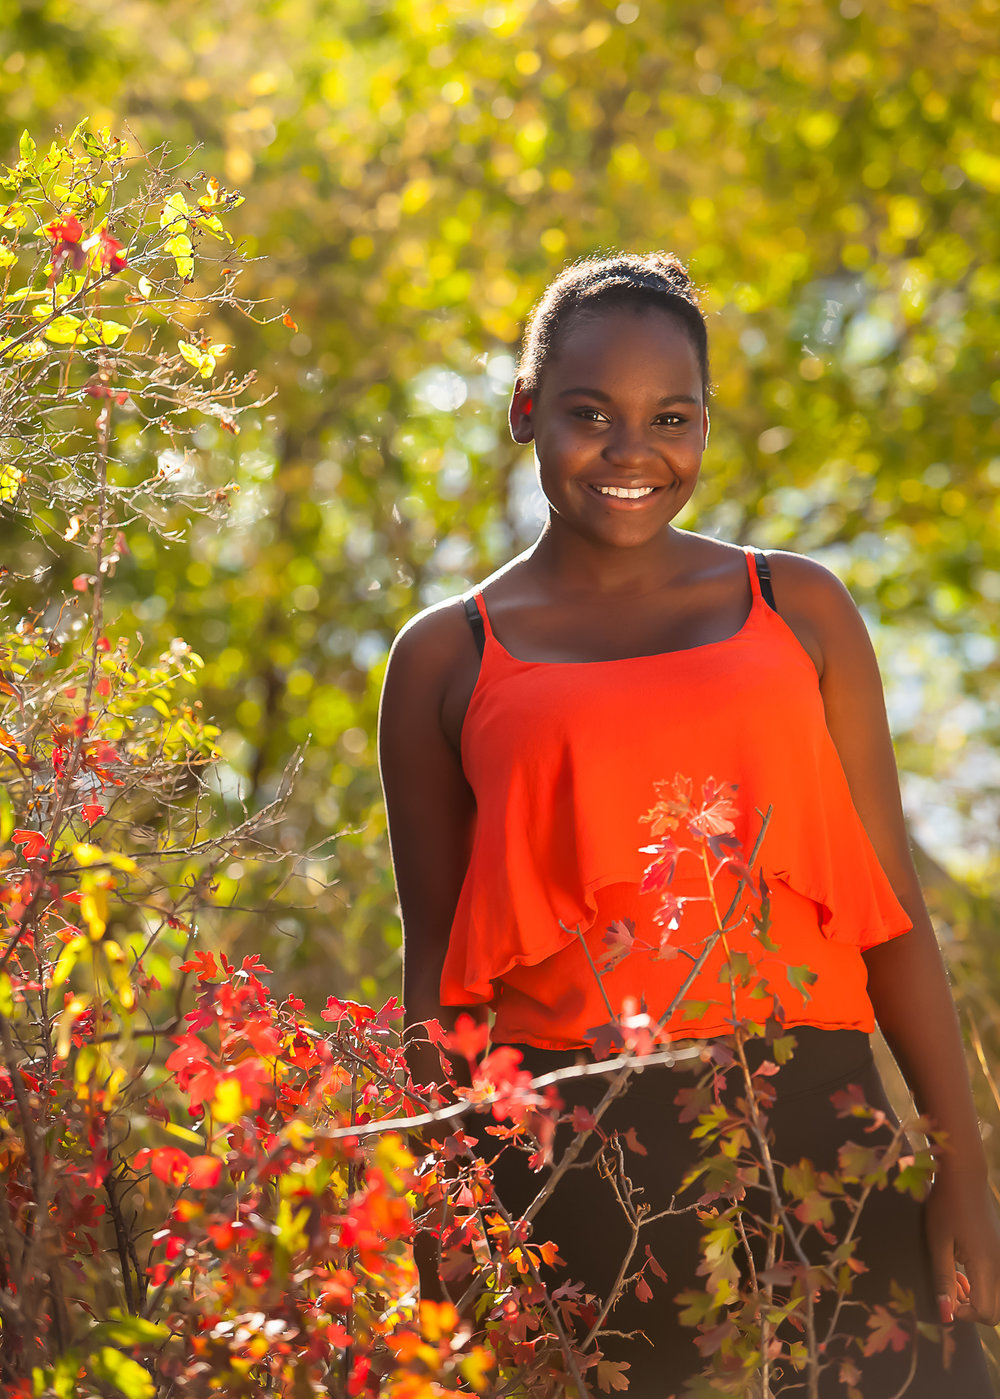 Senior pictures of gorgeous young African American woman in autumn foliage, with Denver photographer Jennifer Koskinen, Merritt Portrait Studio